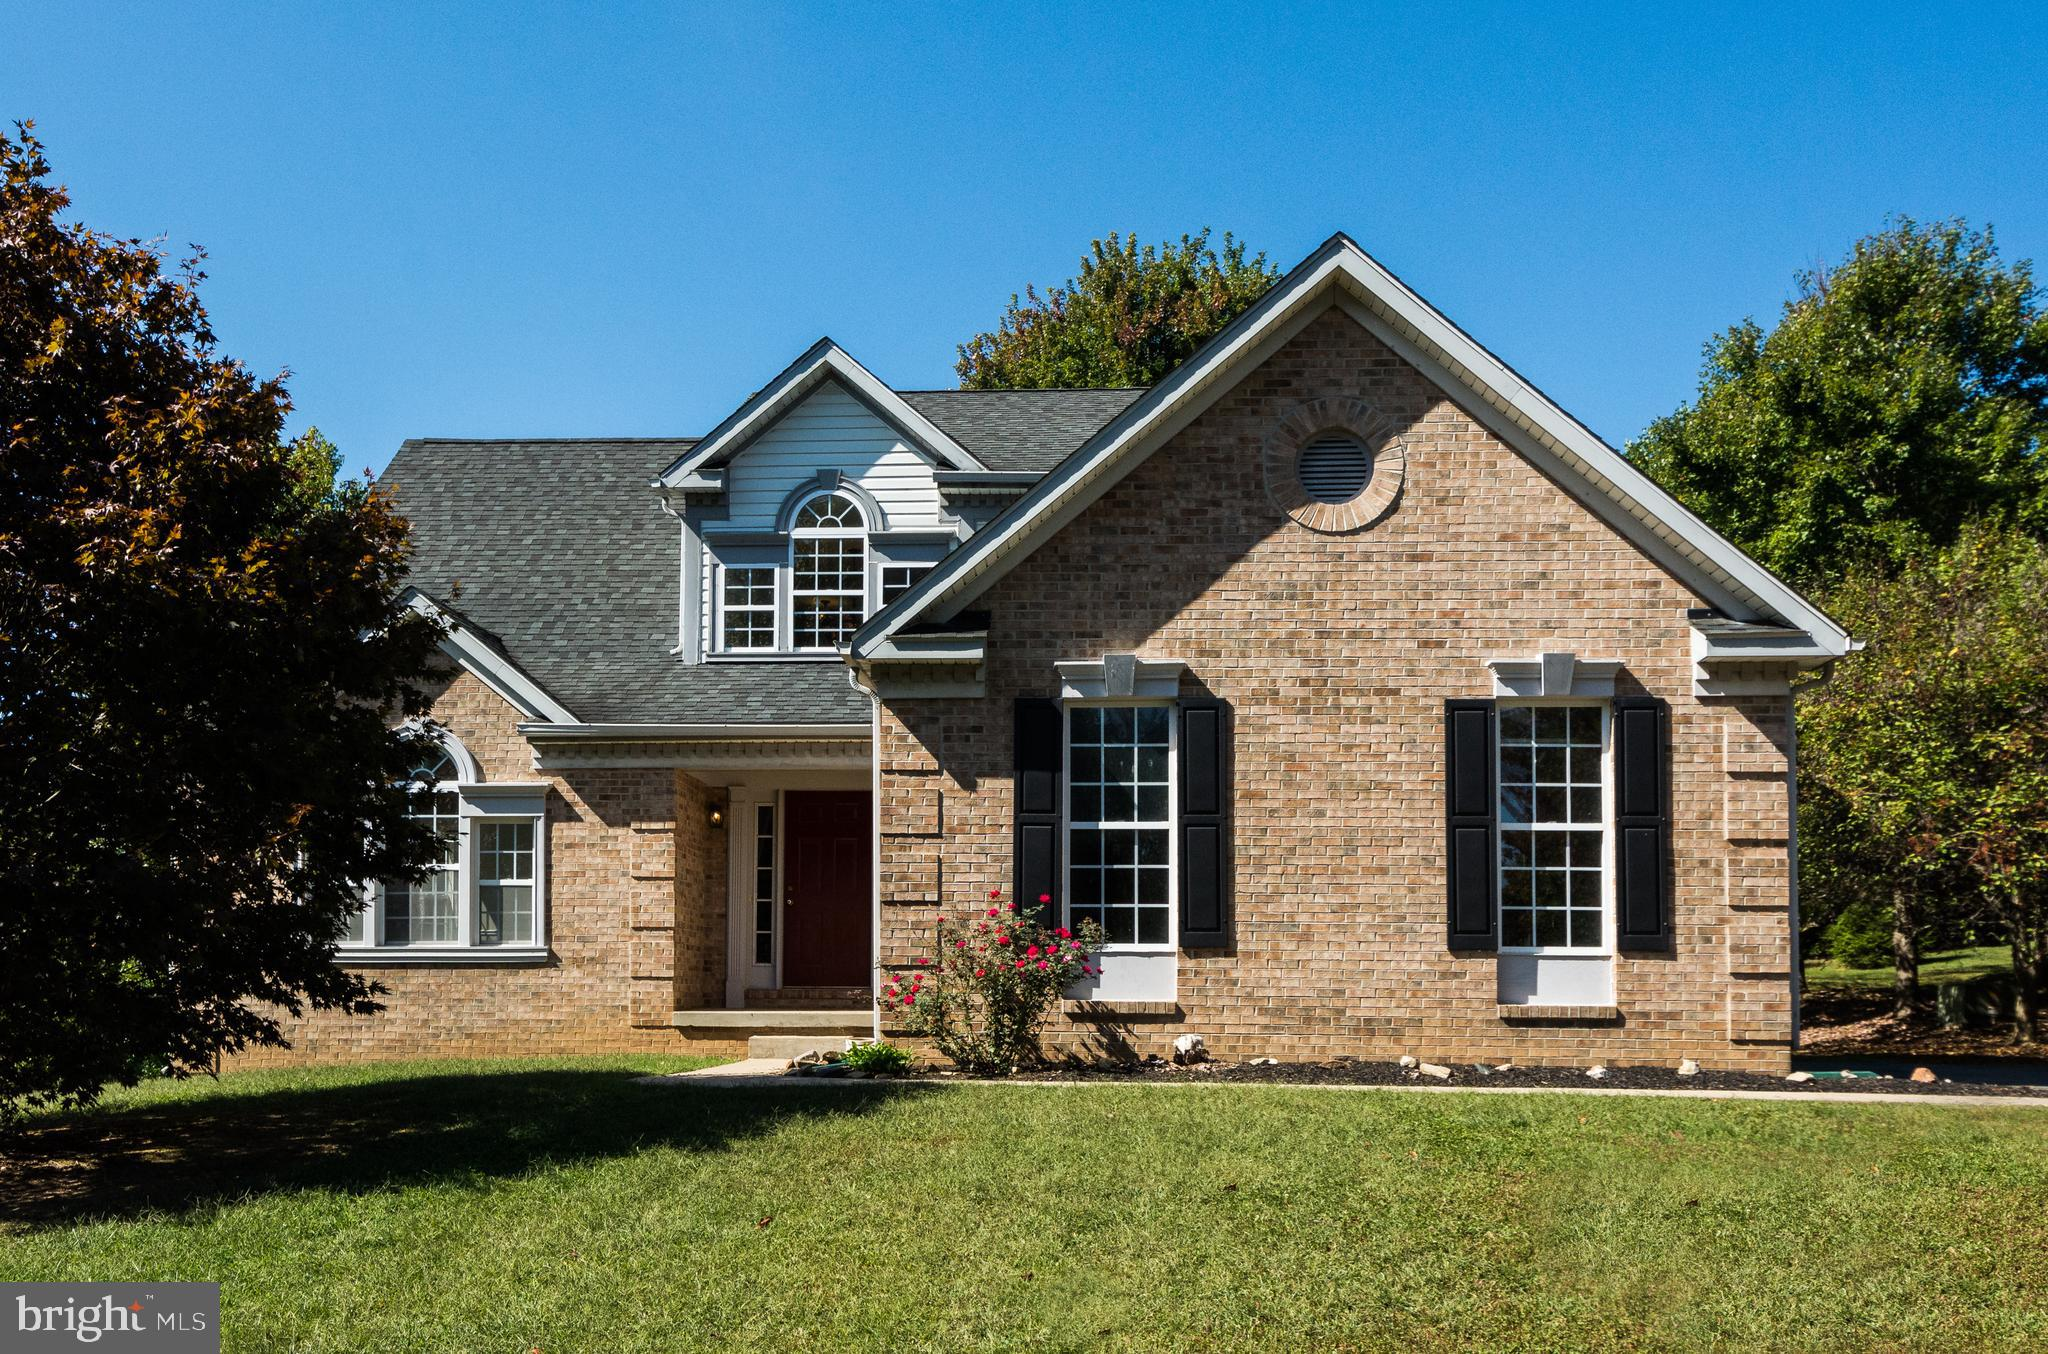 1700 INGLESIDE ROAD, FOREST HILL, MD 21050